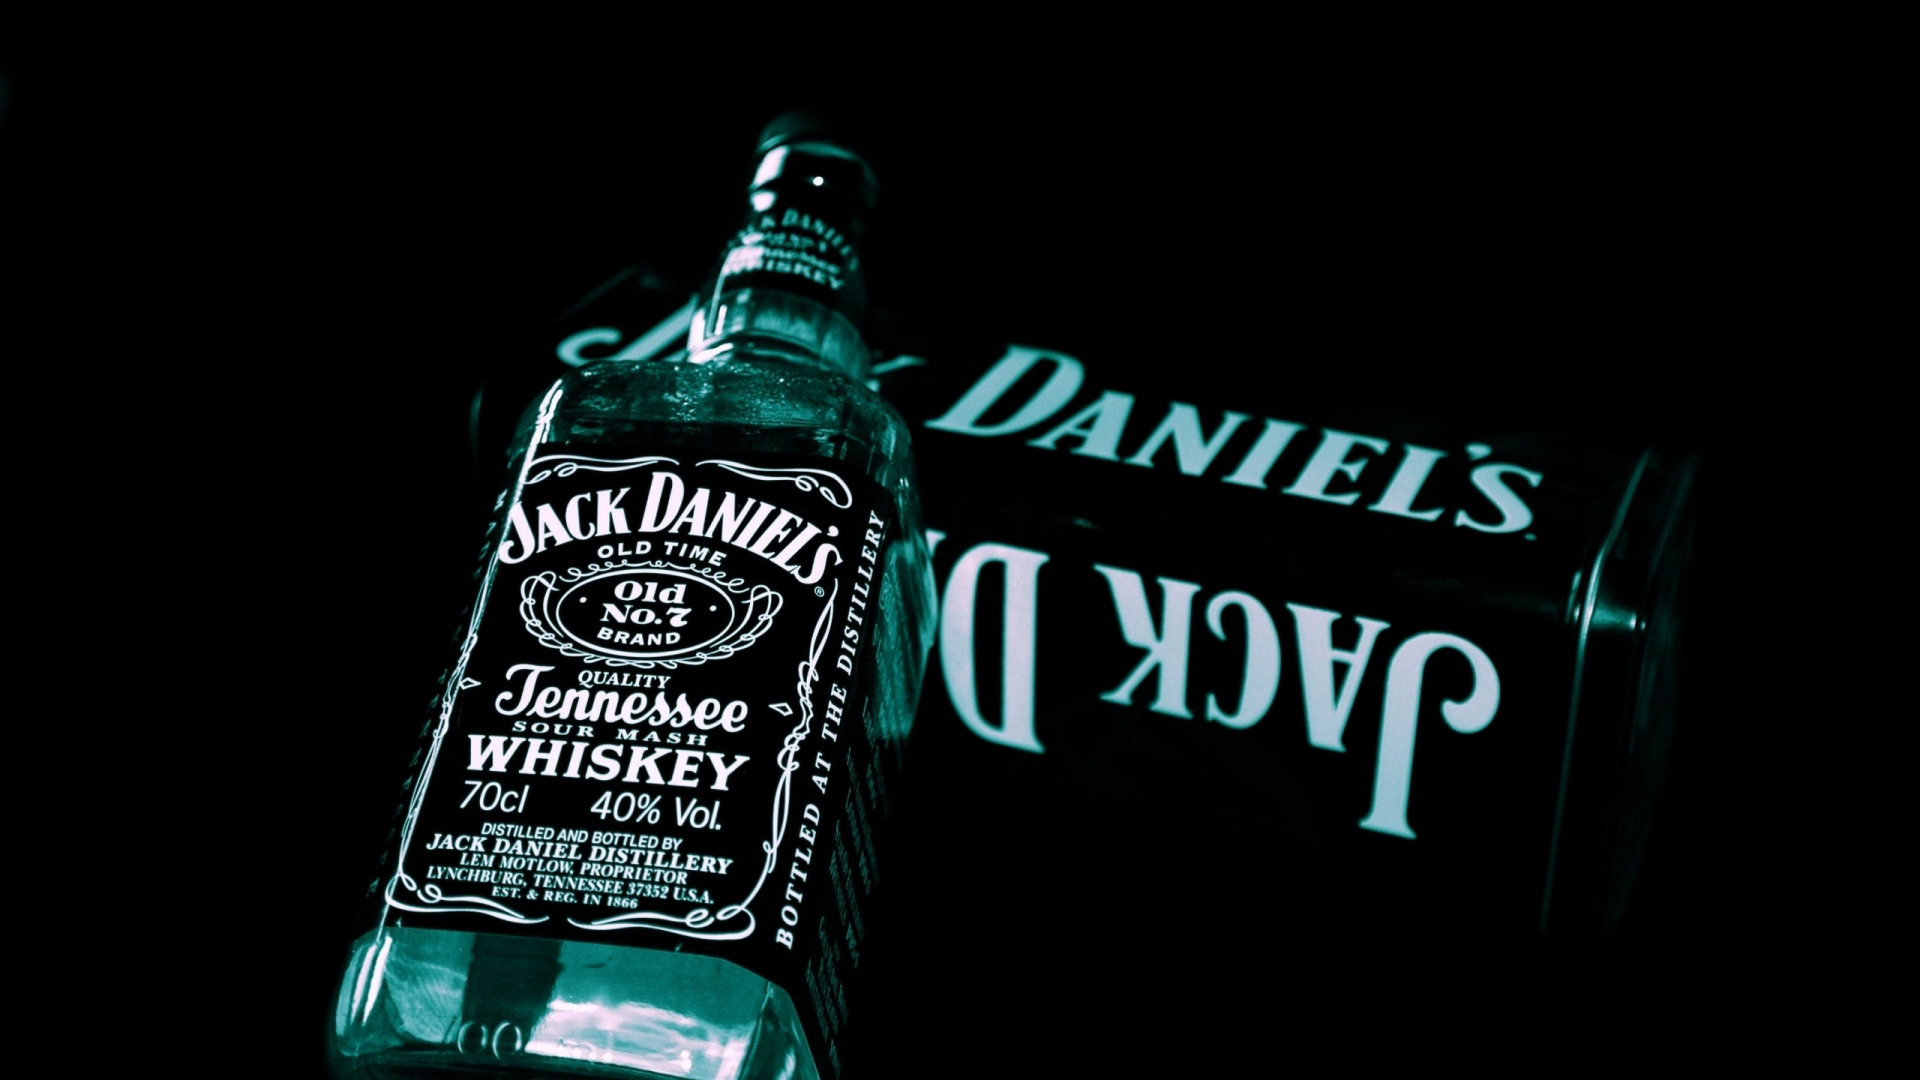 1242x2688 Jack Daniels Whiskey Bottle 2 Iphone Xs Max Hd 4k Wallpapers Images Backgrounds Photos And Pictures